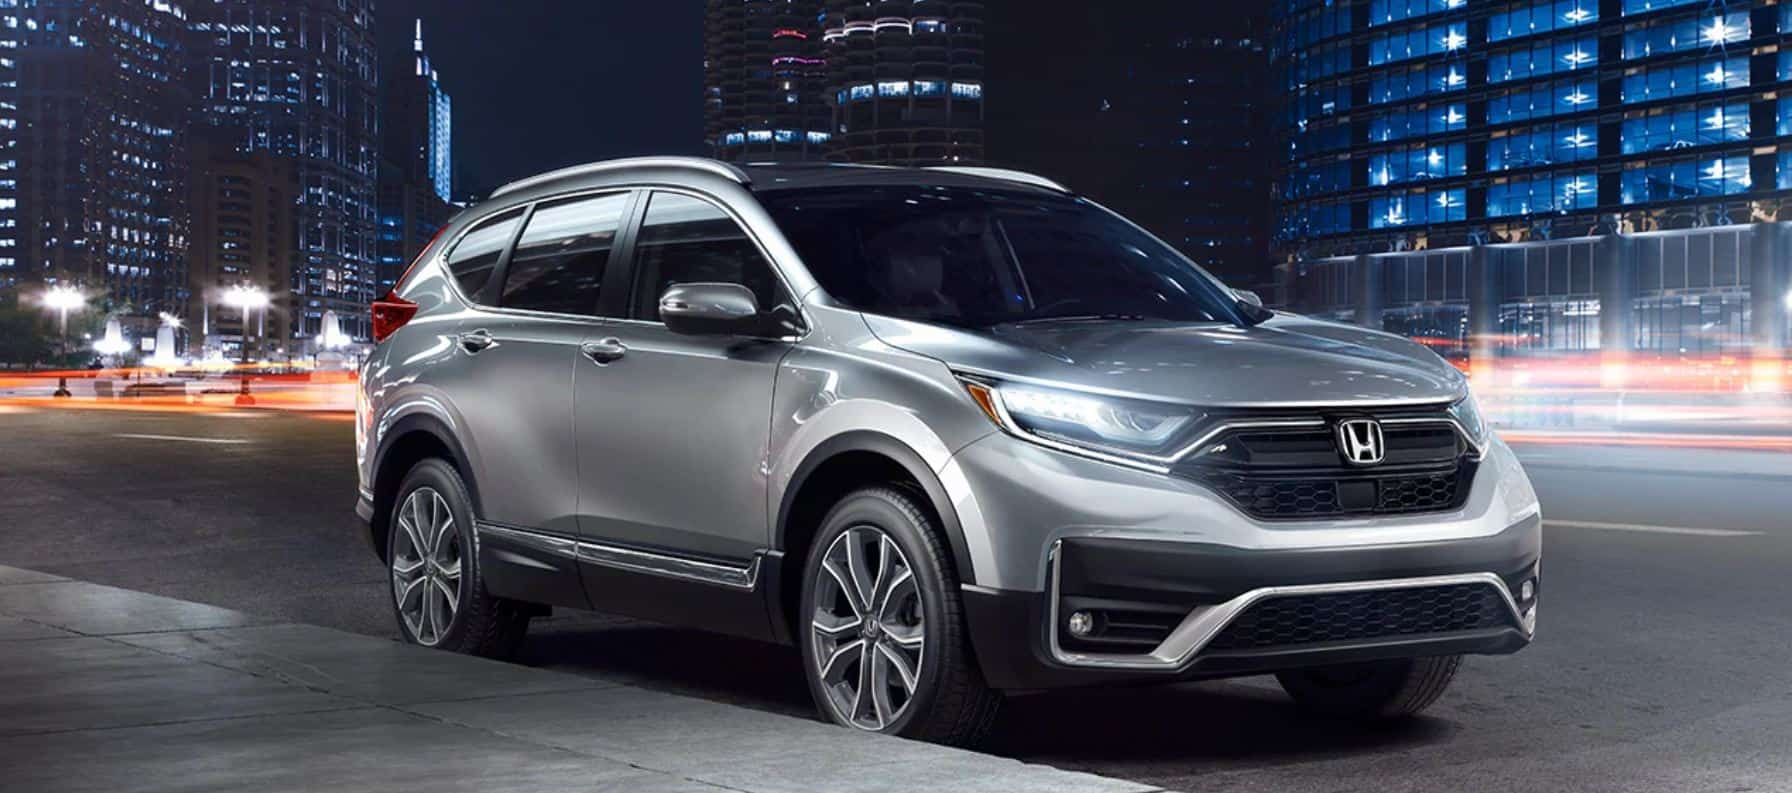 Why Buy the 2020 Honda CR-V in West Burlington IA